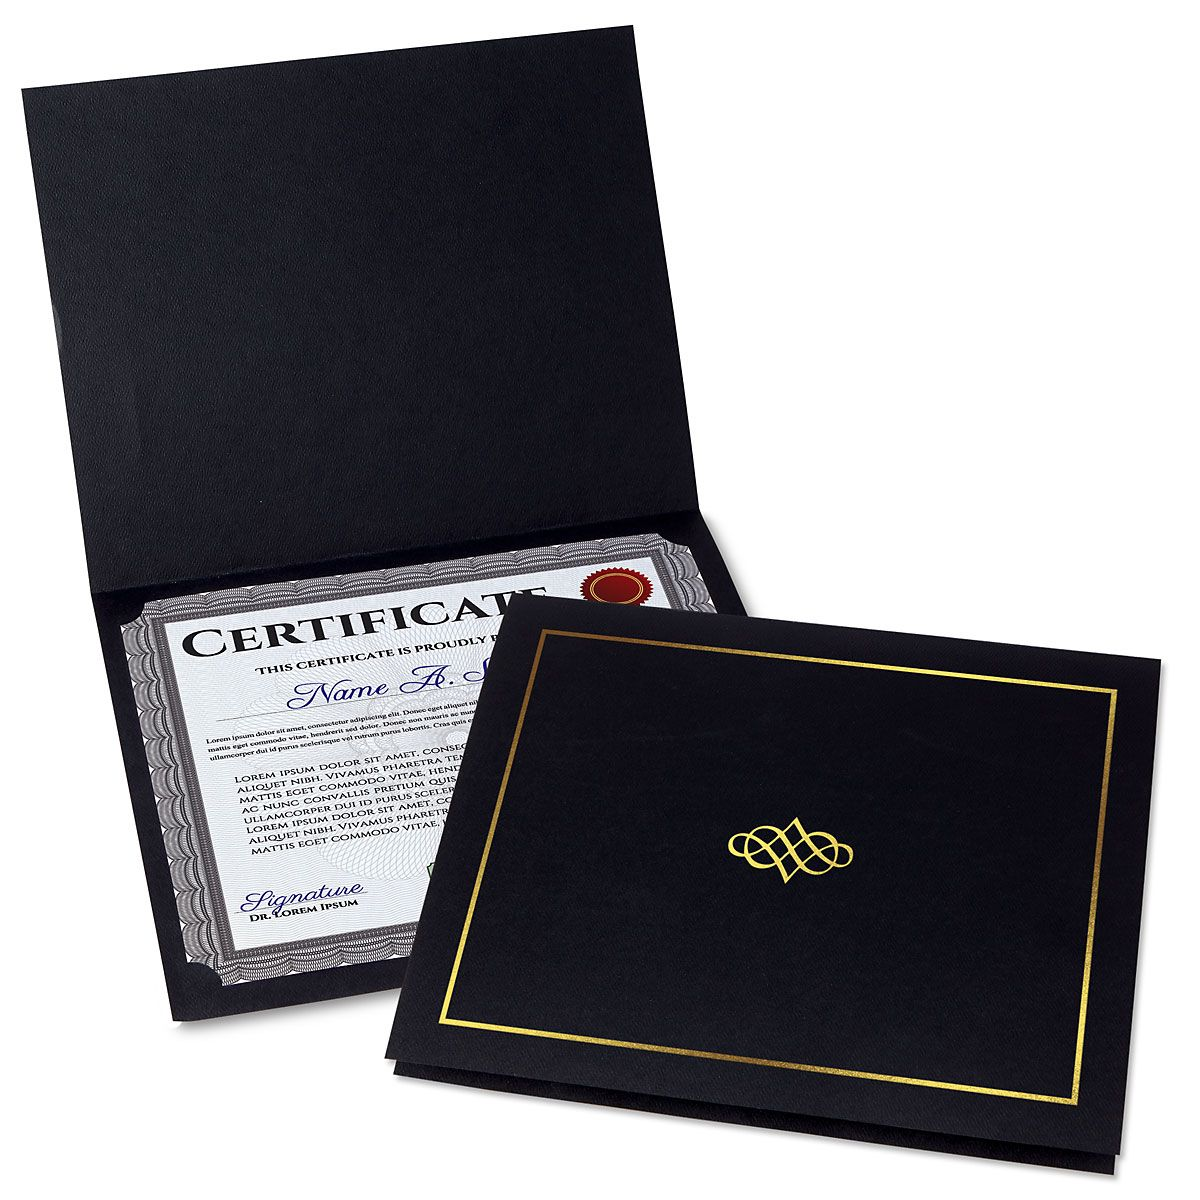 Ornate Black Certificate Folder with Gold Border/Crest - Set of 50